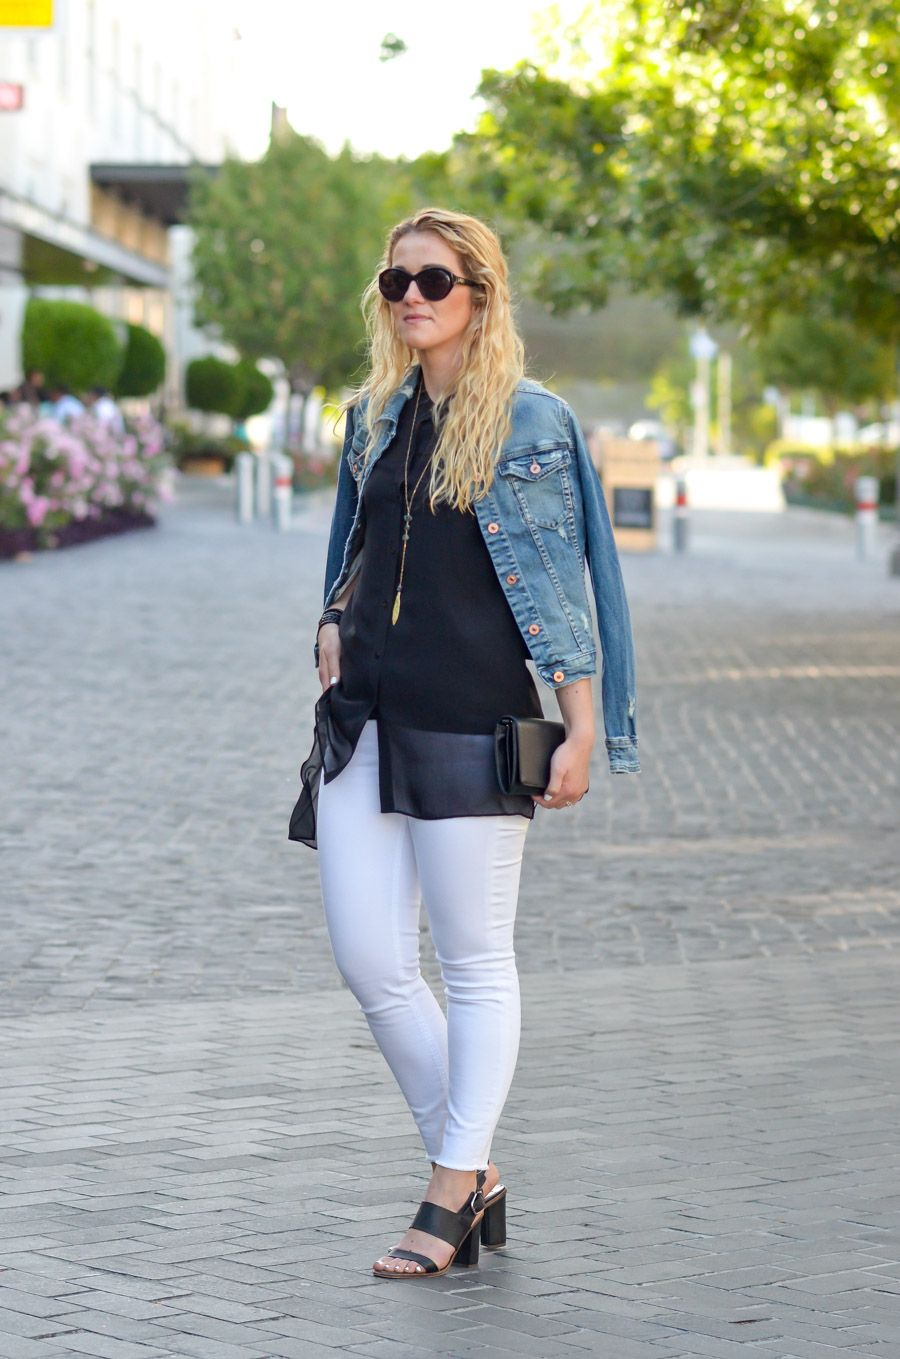 c506c147c3 Black Top with White Jeans and Denim JacketOutfit